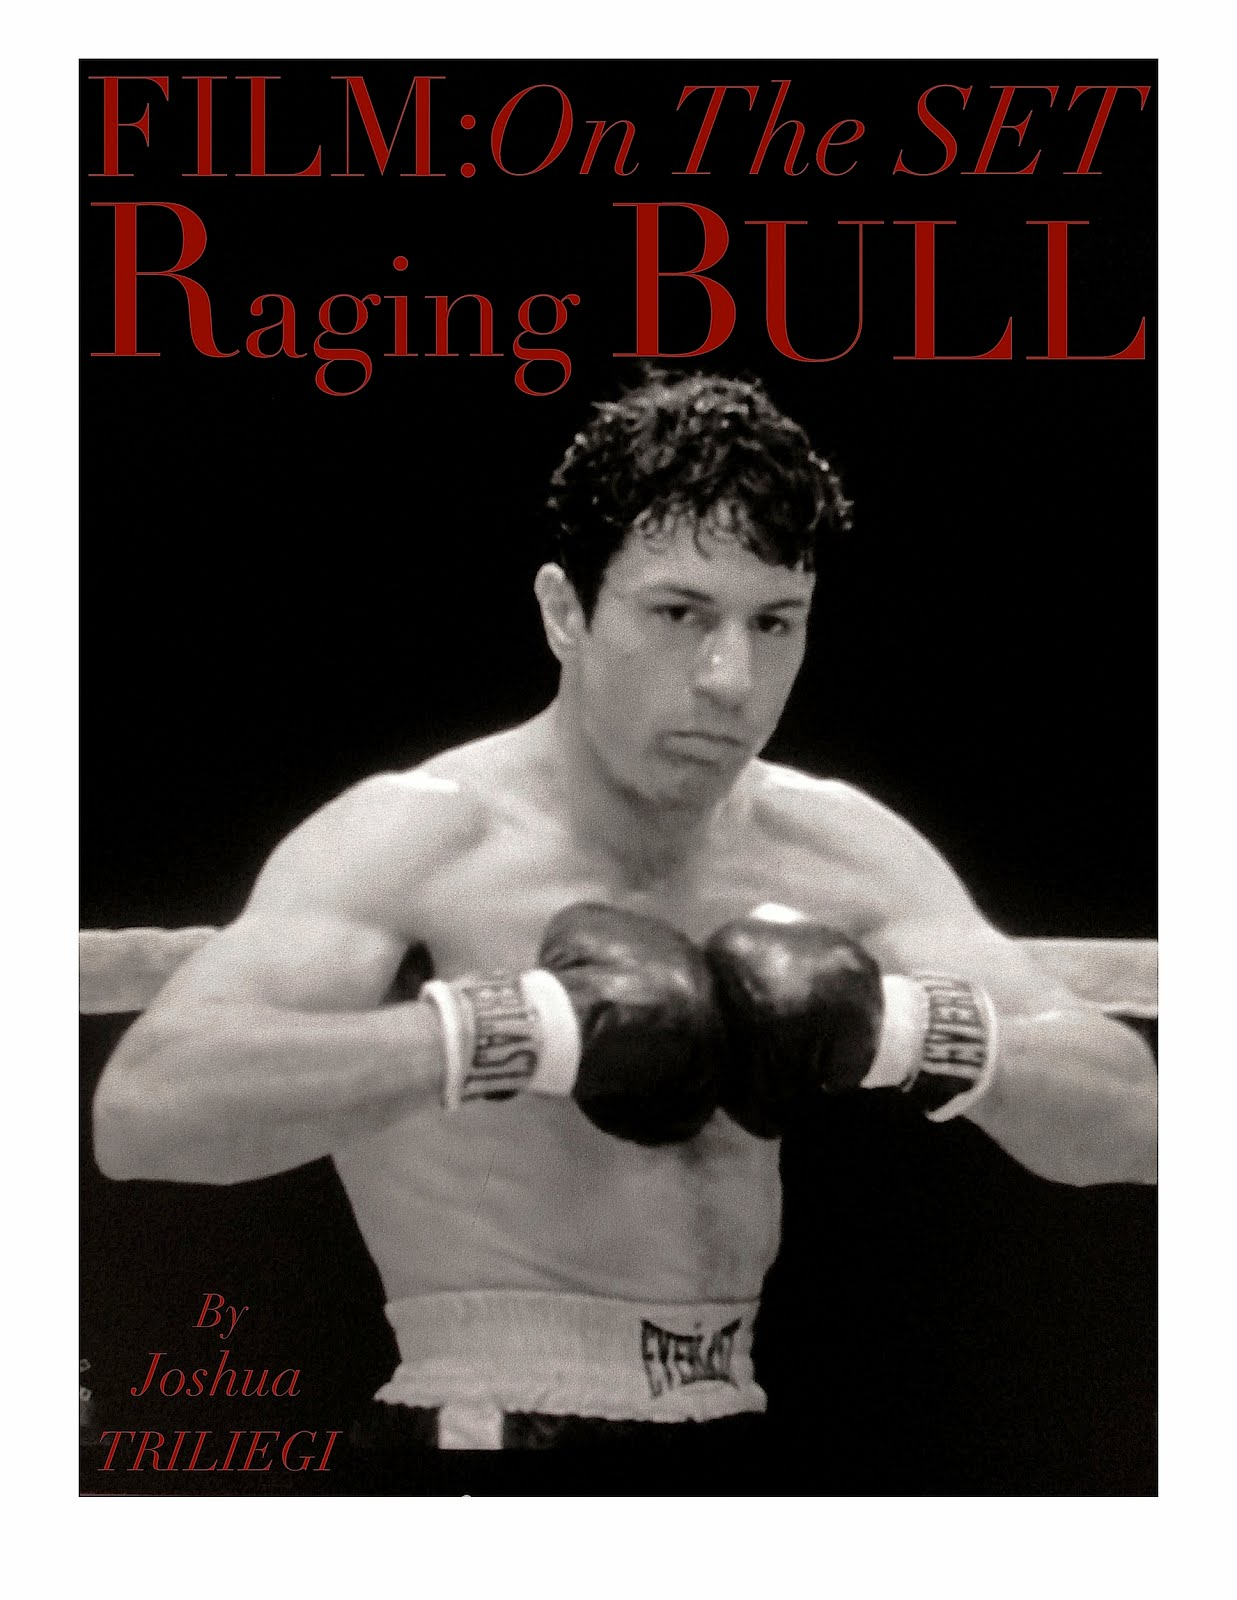 On The Set RAGING BULL